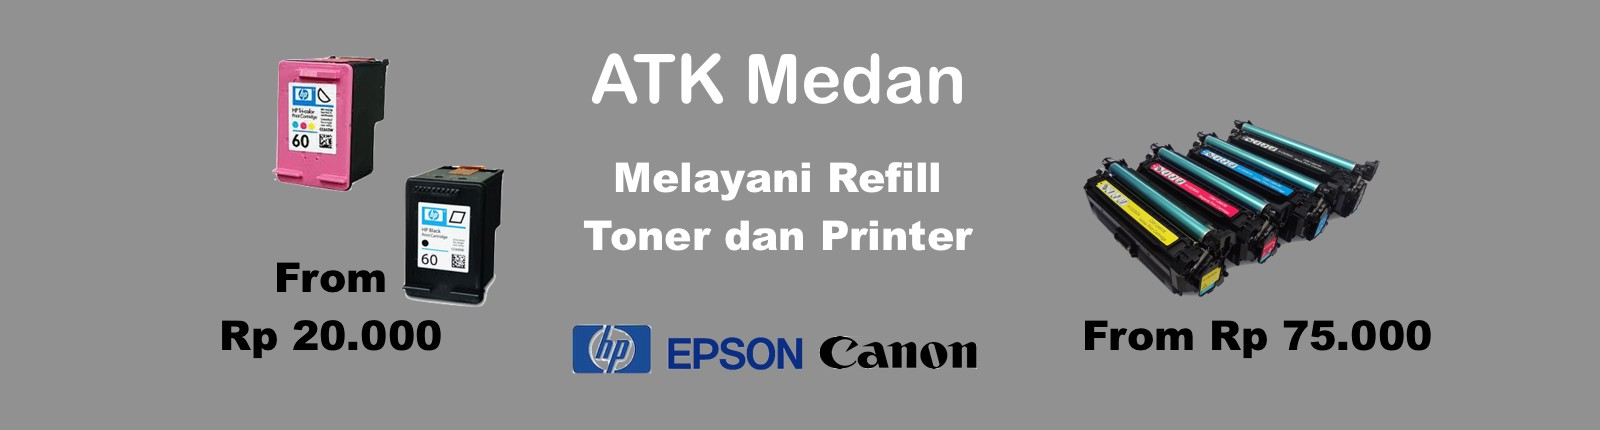 Jasa Isi Toner dan Printer